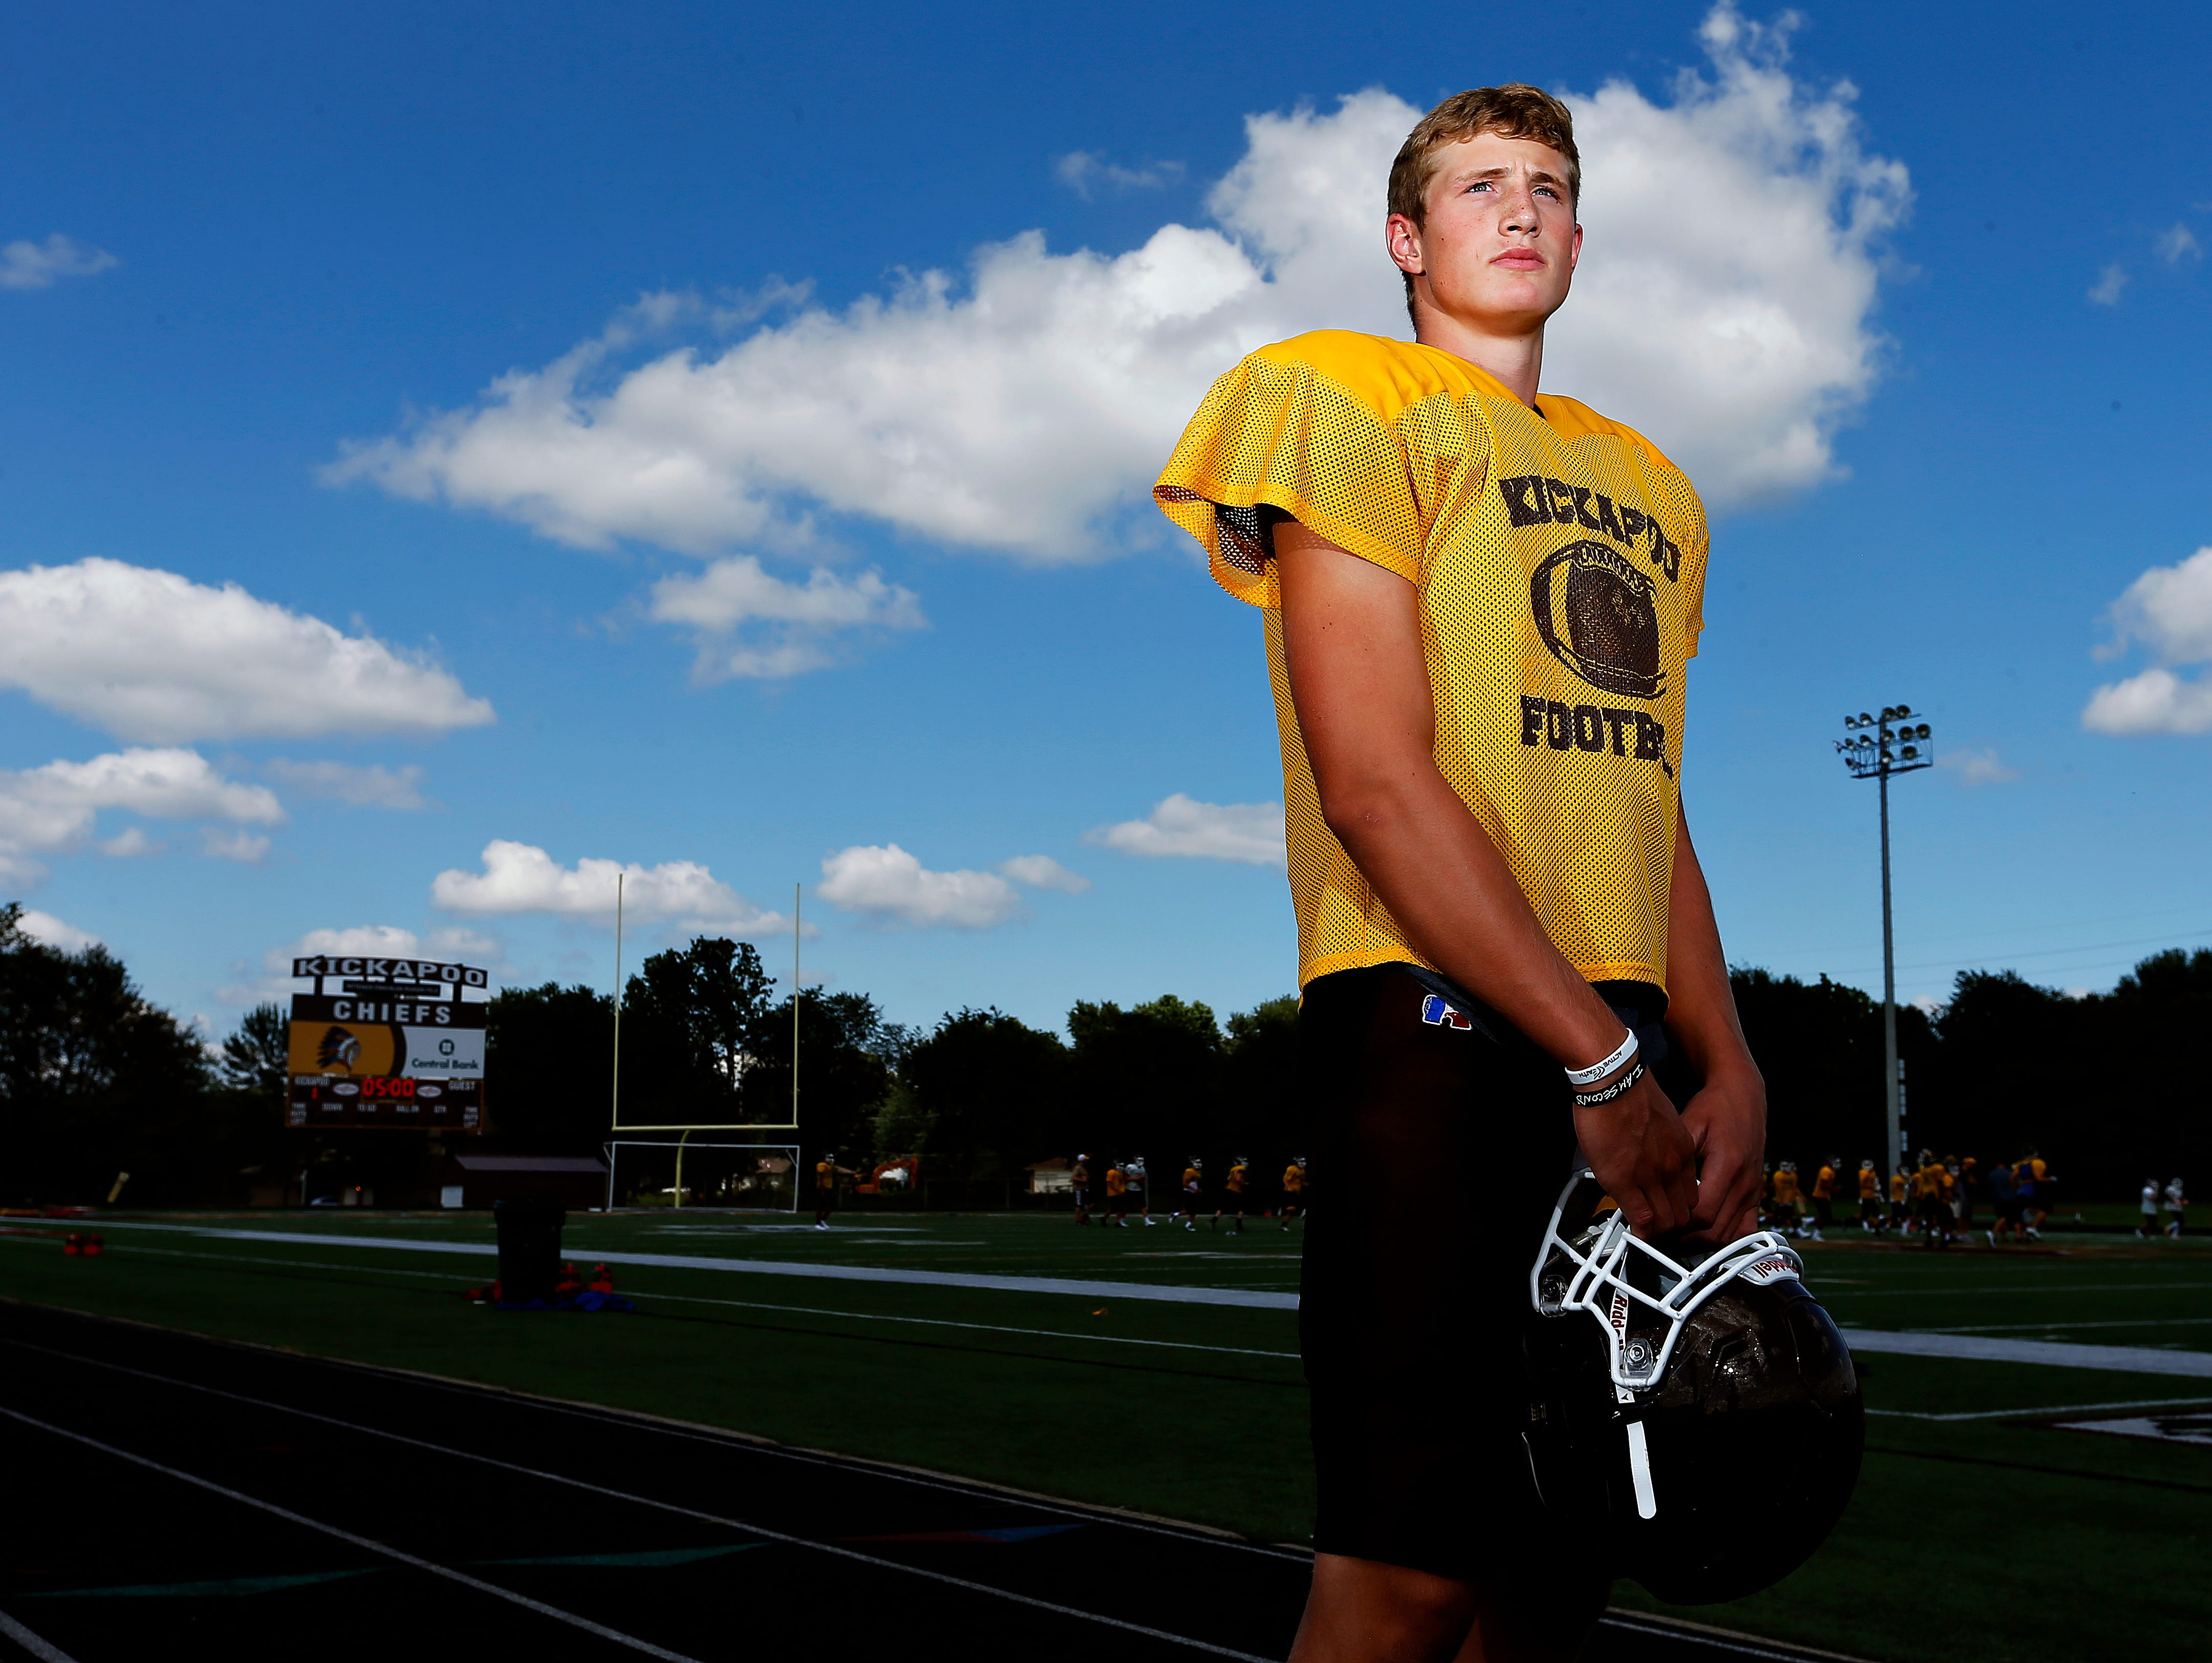 Kickapoo High School junior Travis Vokolek poses for a portrait prior to a Chiefs practice at Pottenger Stadium in Springfield, Mo. on Aug. 17, 2016.